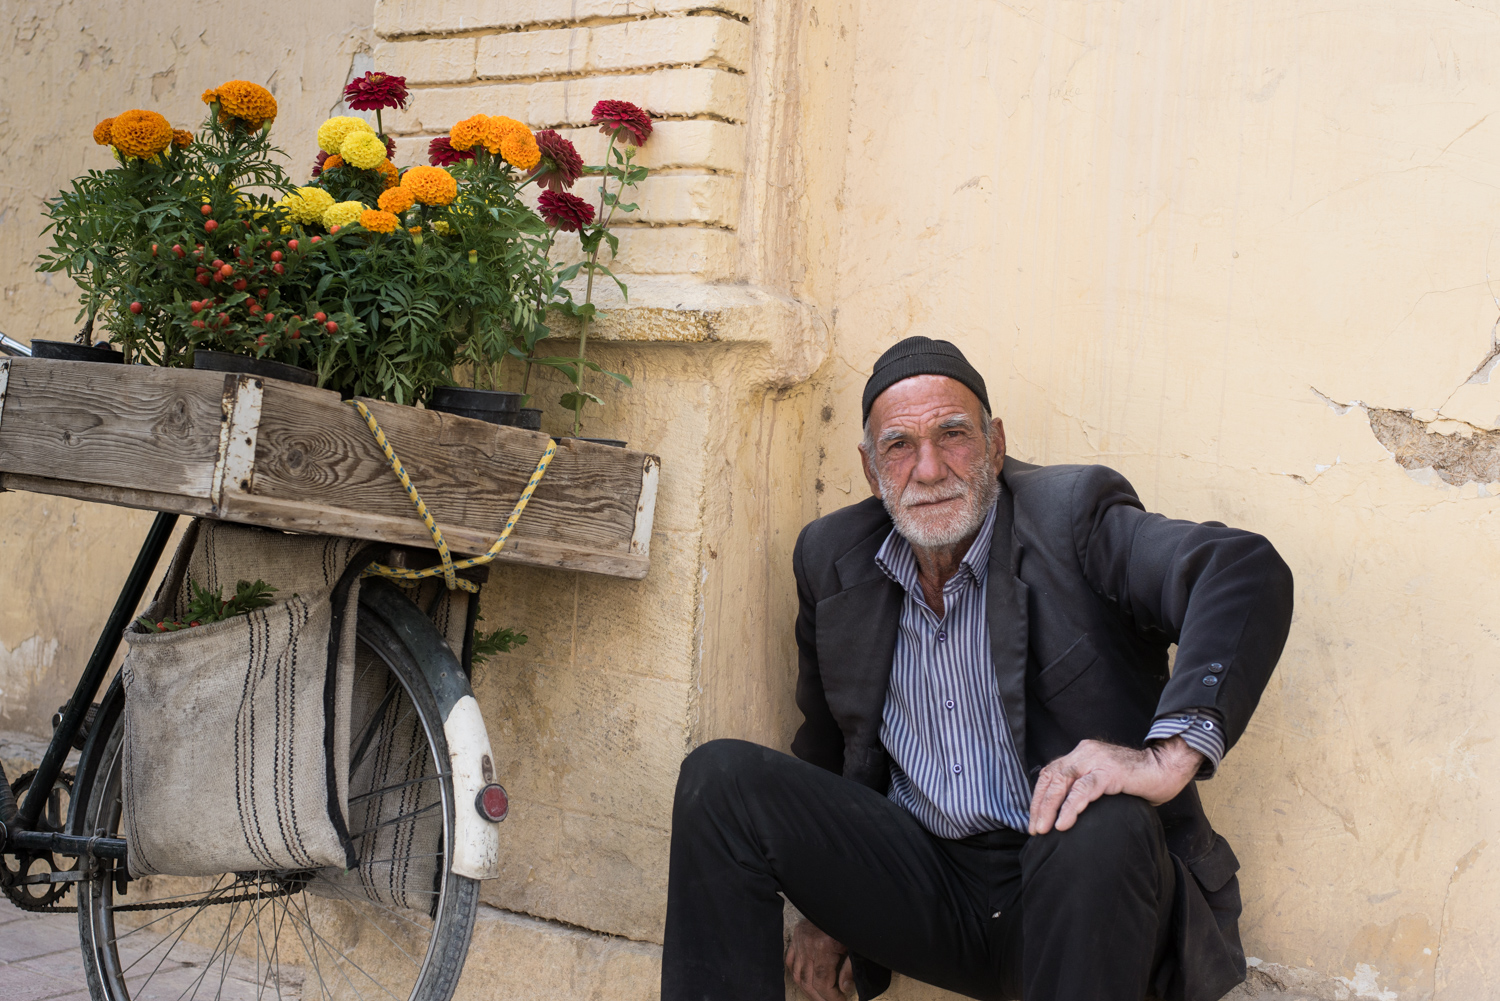 Old man selling flowers in Esphahan, Iran